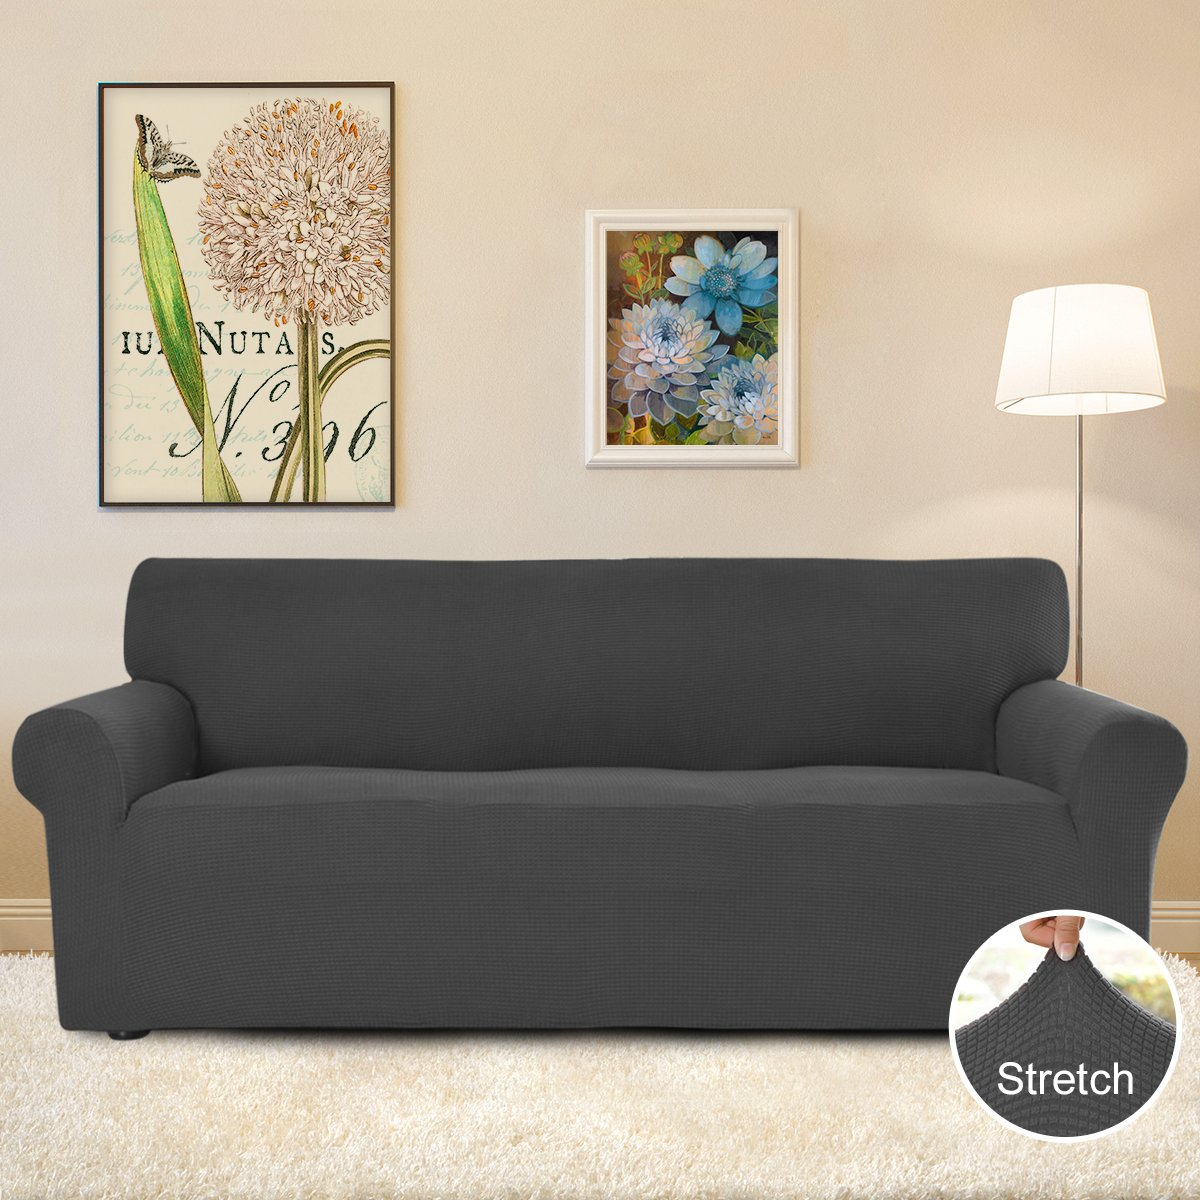 Easy-Going Stretch Slipcovers, Sofa Covers, Furniture Protector Elastic Bottom, Anti-Slip Foam, 1 Piece Couch Shield, Polyester Spandex Jacquard Fabric Small Checks (Sofa,Dark Gray)